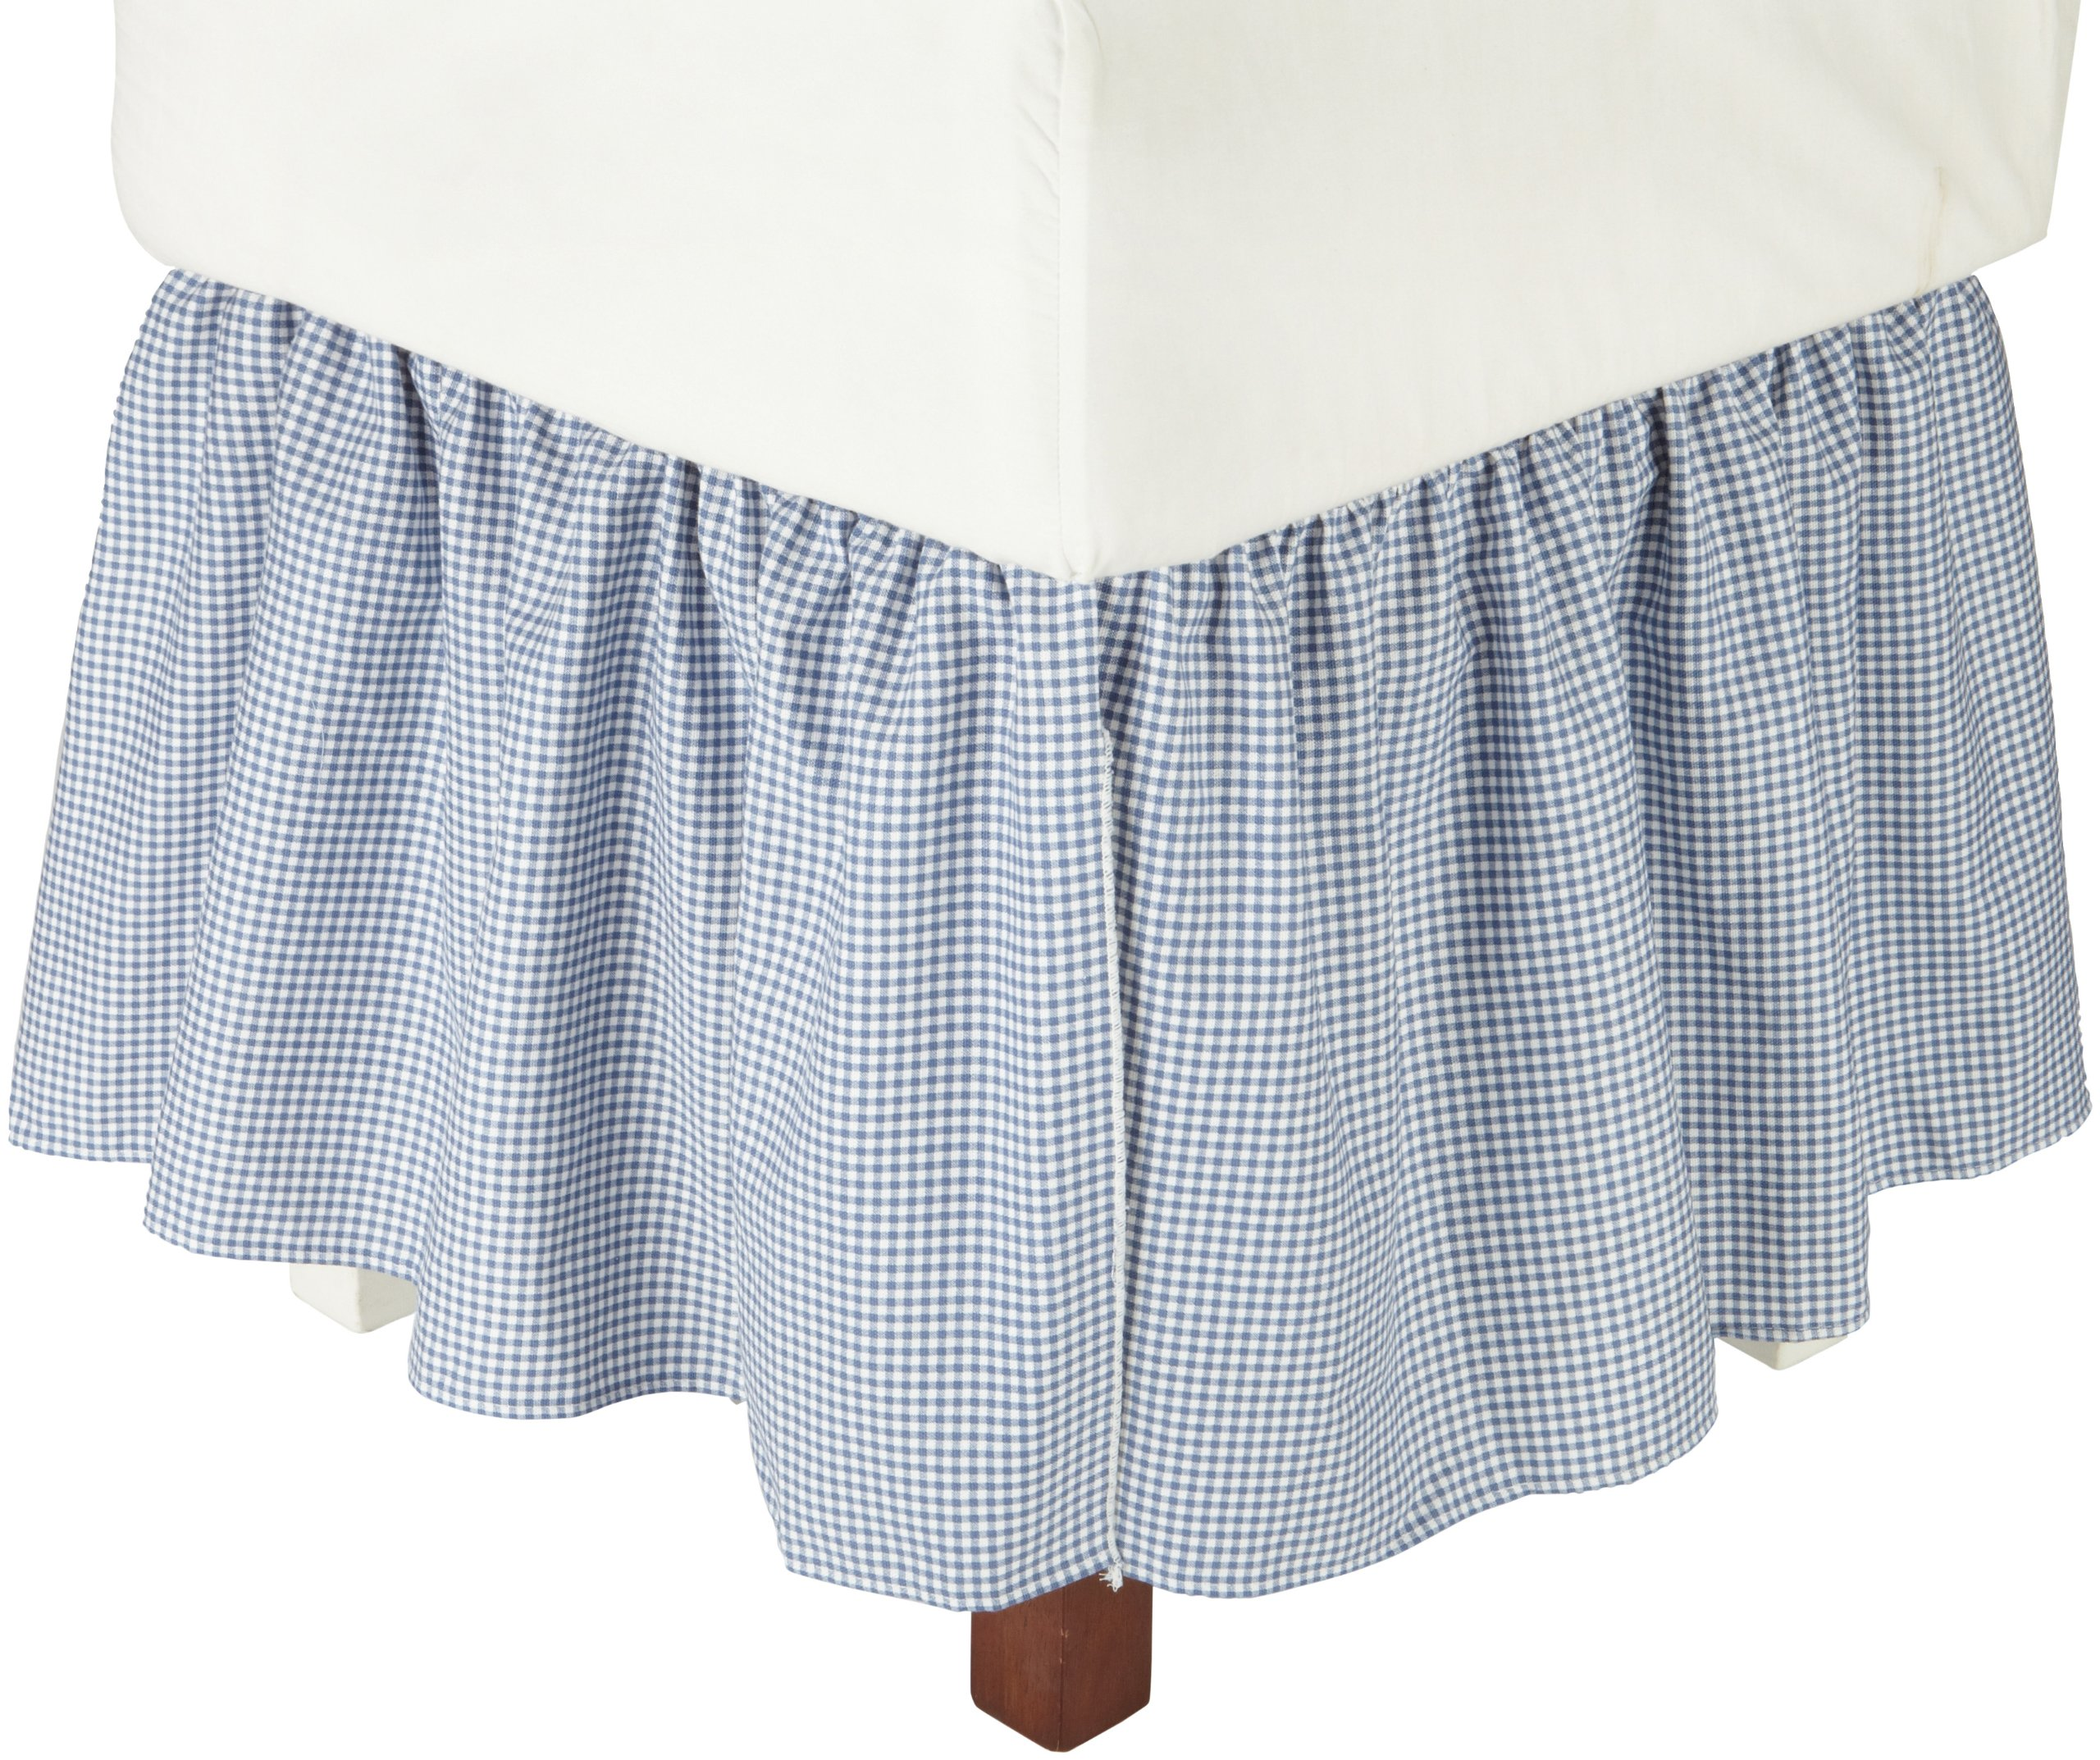 logan gingham check print 18 inch dust ruffle bed skirt king size blue. Black Bedroom Furniture Sets. Home Design Ideas